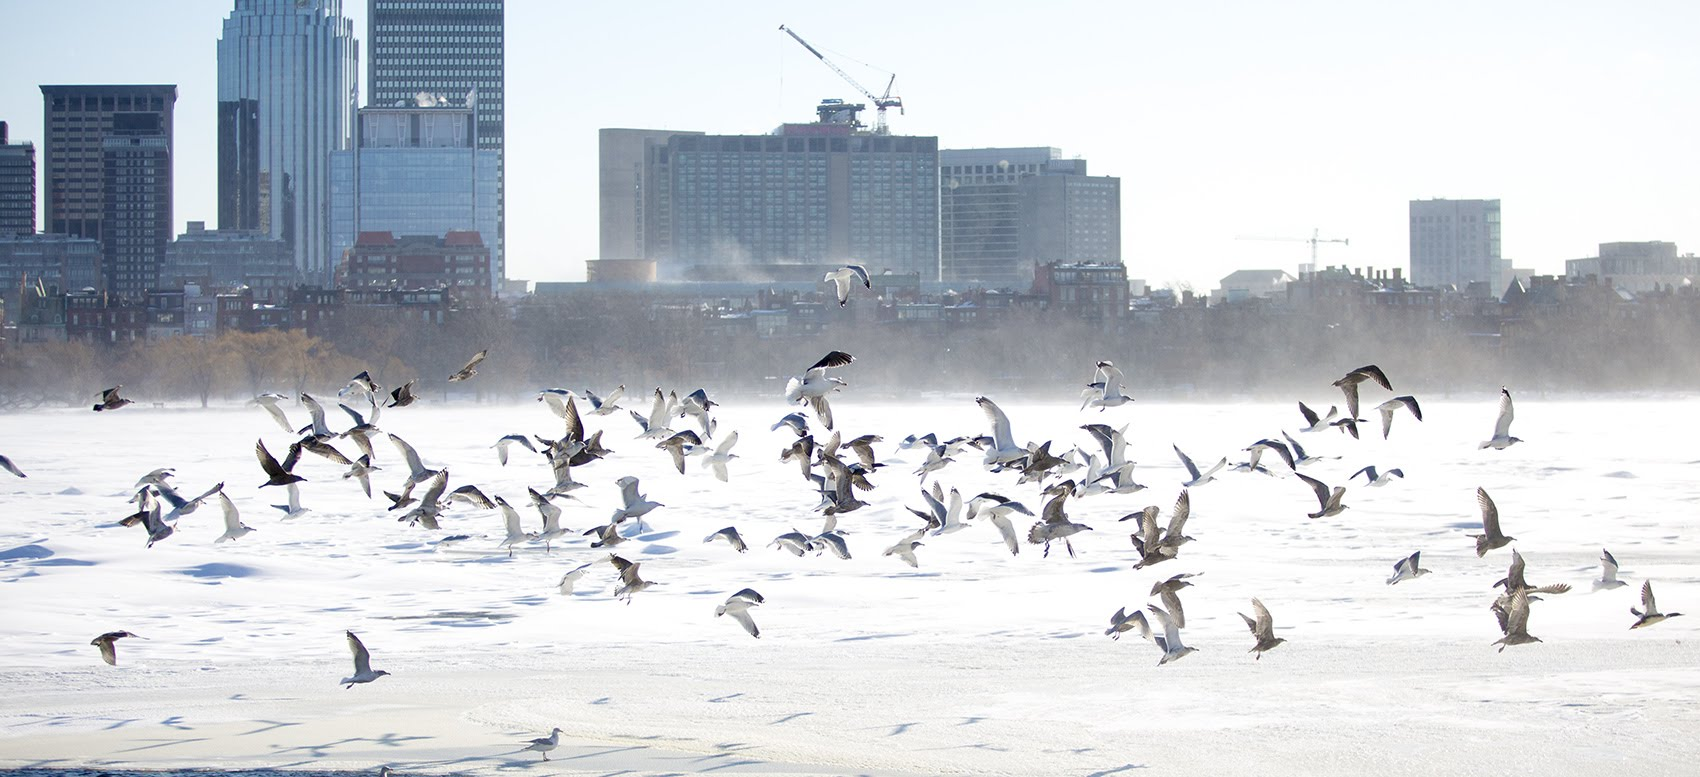 Birds take off from the snowy Charles River after a gust wind spooks them. (Jesse Costa/WBUR)